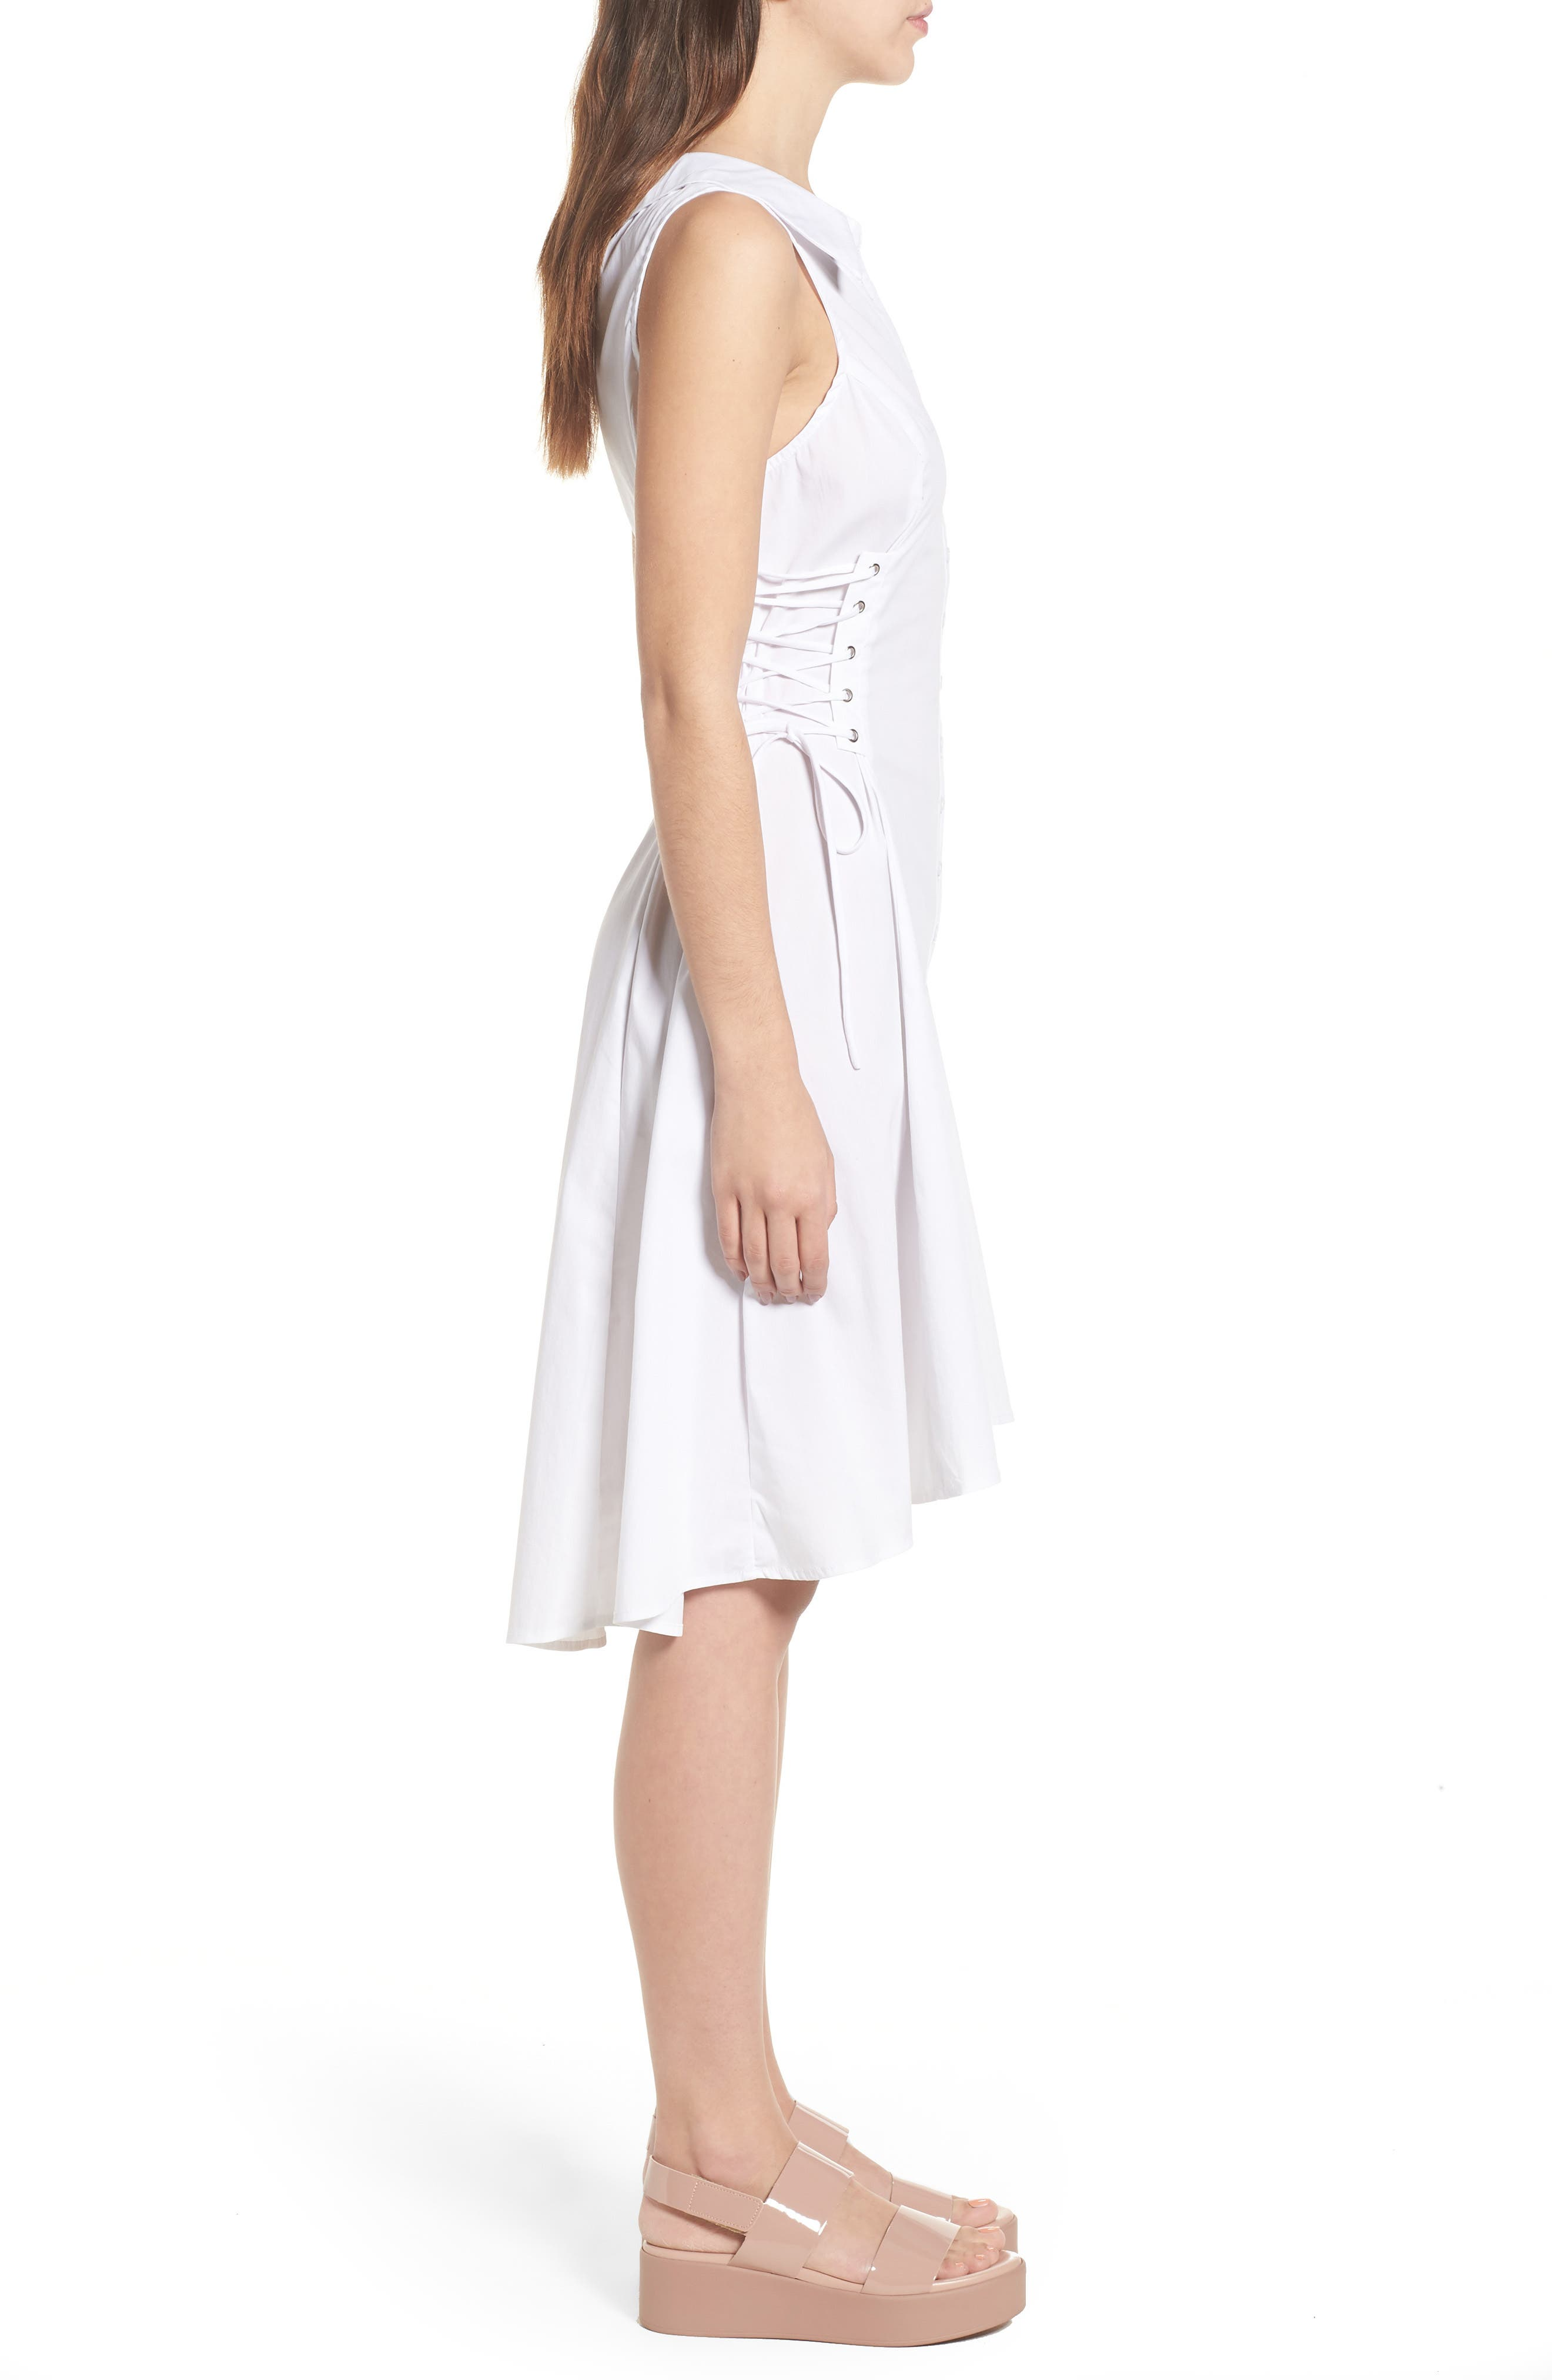 Sydney Lace Side Dress,                             Alternate thumbnail 3, color,                             White